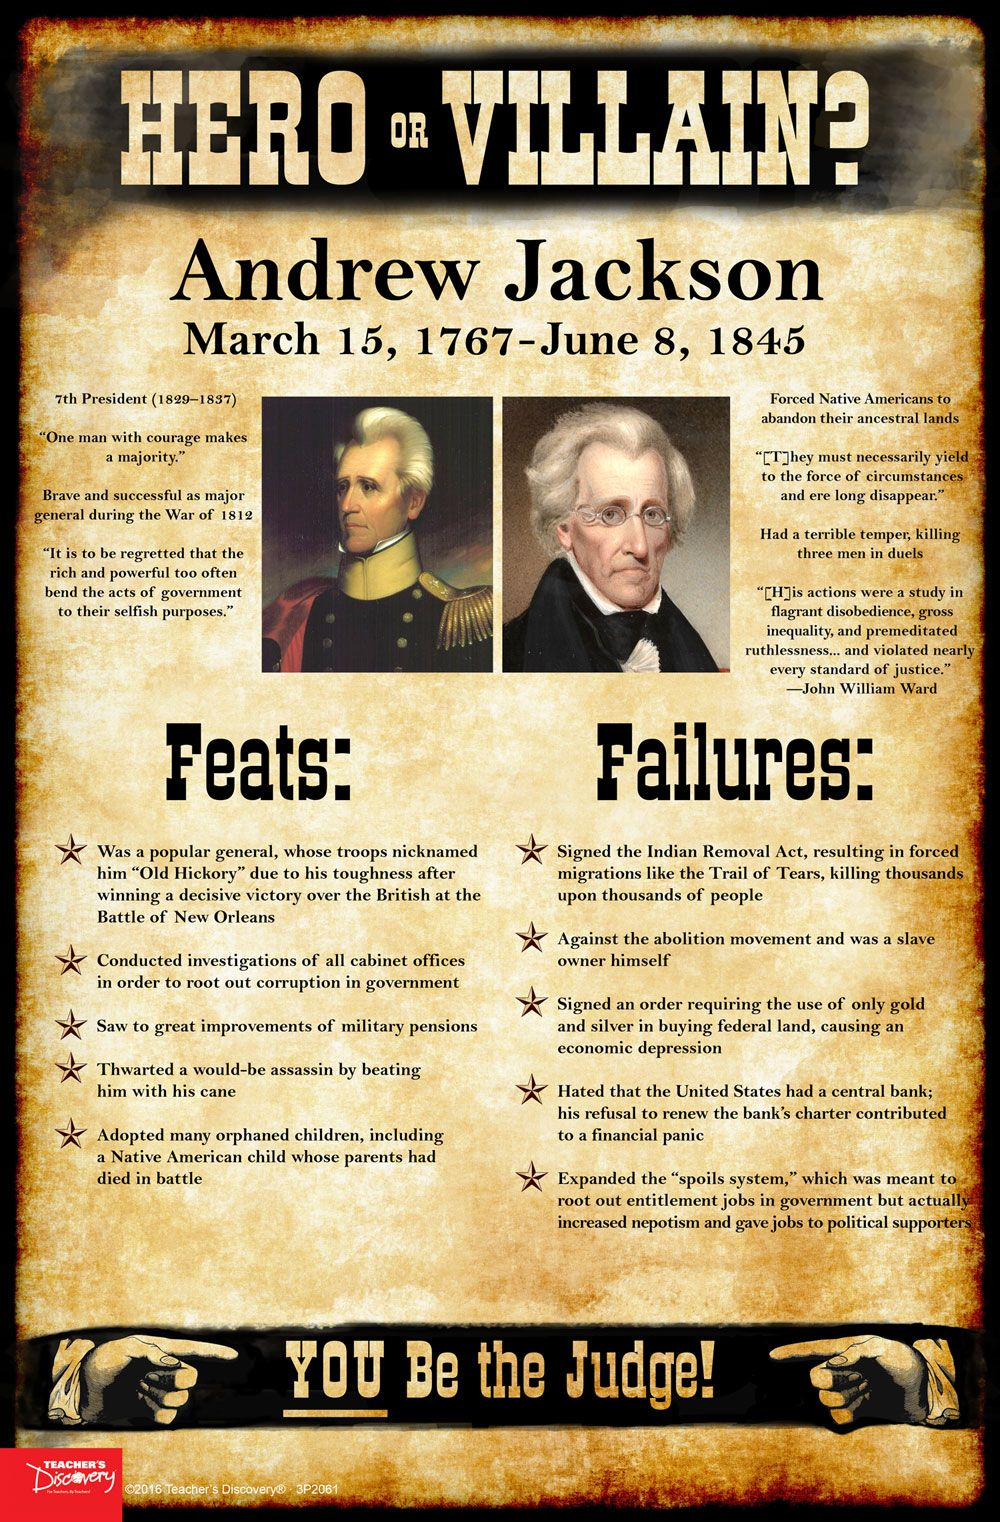 andrew jackson presidency essays Stuck writing a andrew jackson essay we have many andrew jackson example essays that answers many essay questions in andrew jackson.